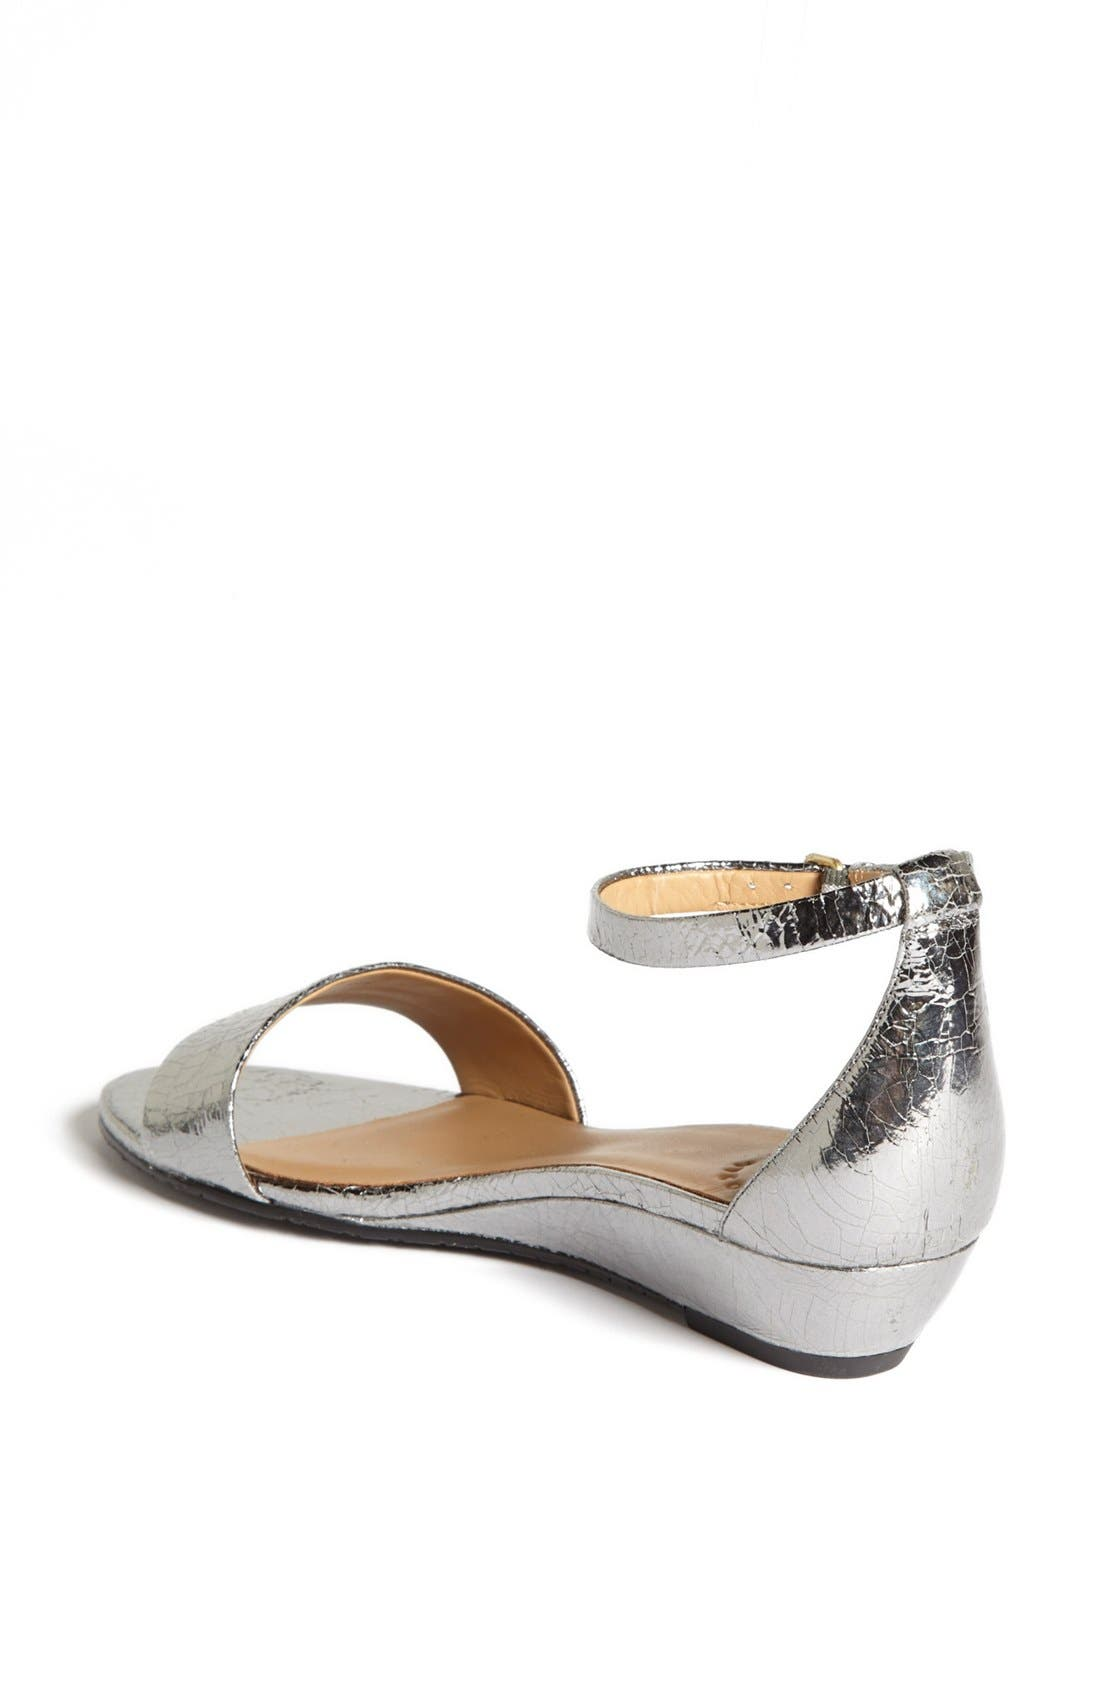 Alternate Image 2  - MARC BY MARC JACOBS 'Simplicity' Wedge Sandal